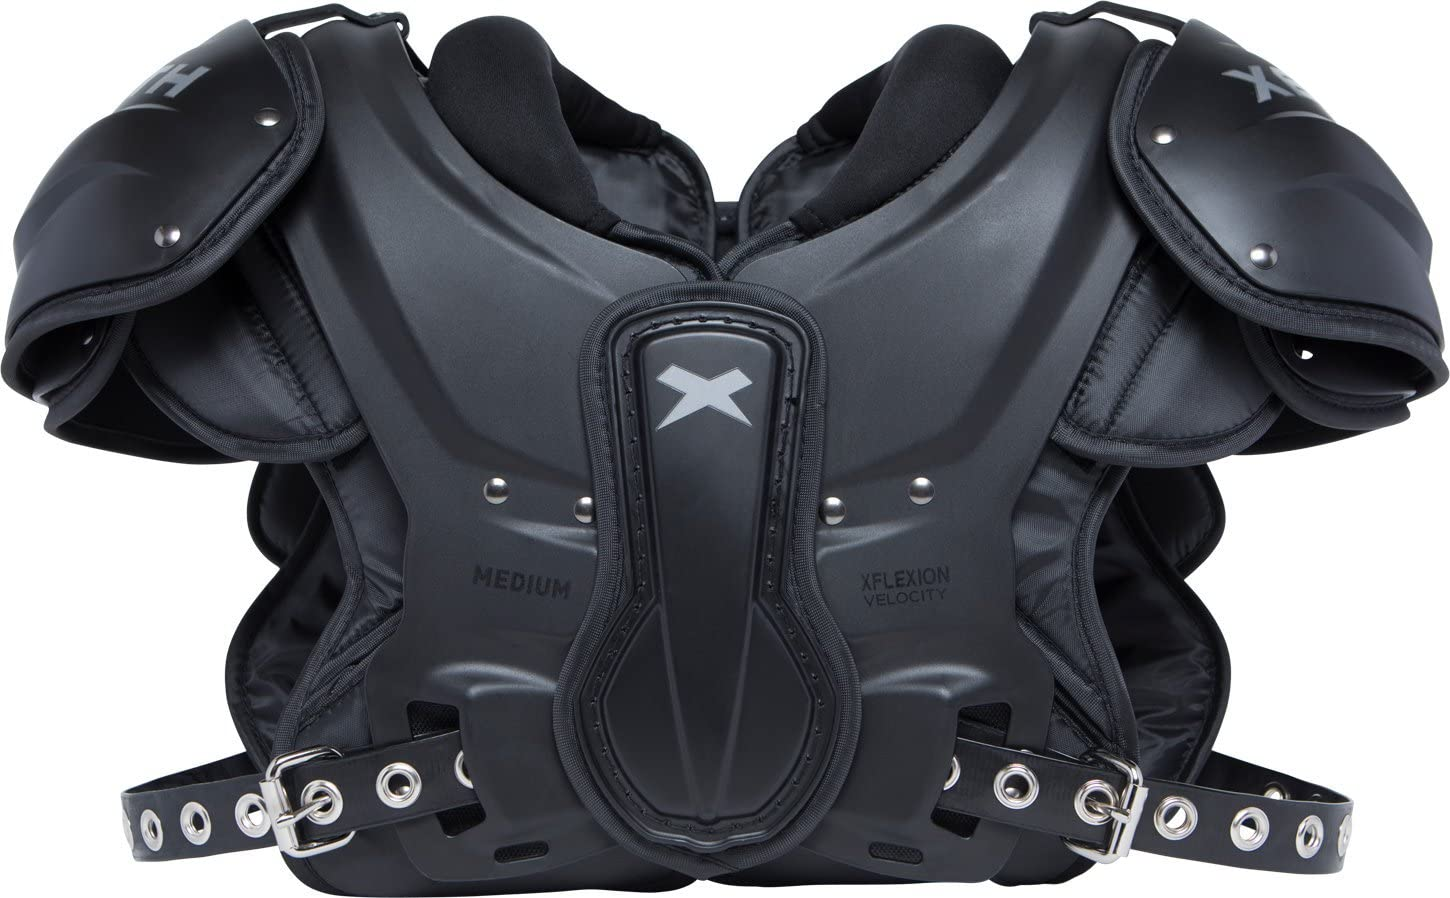 Xenith XFlexion Velocity Football Shoulder Pads